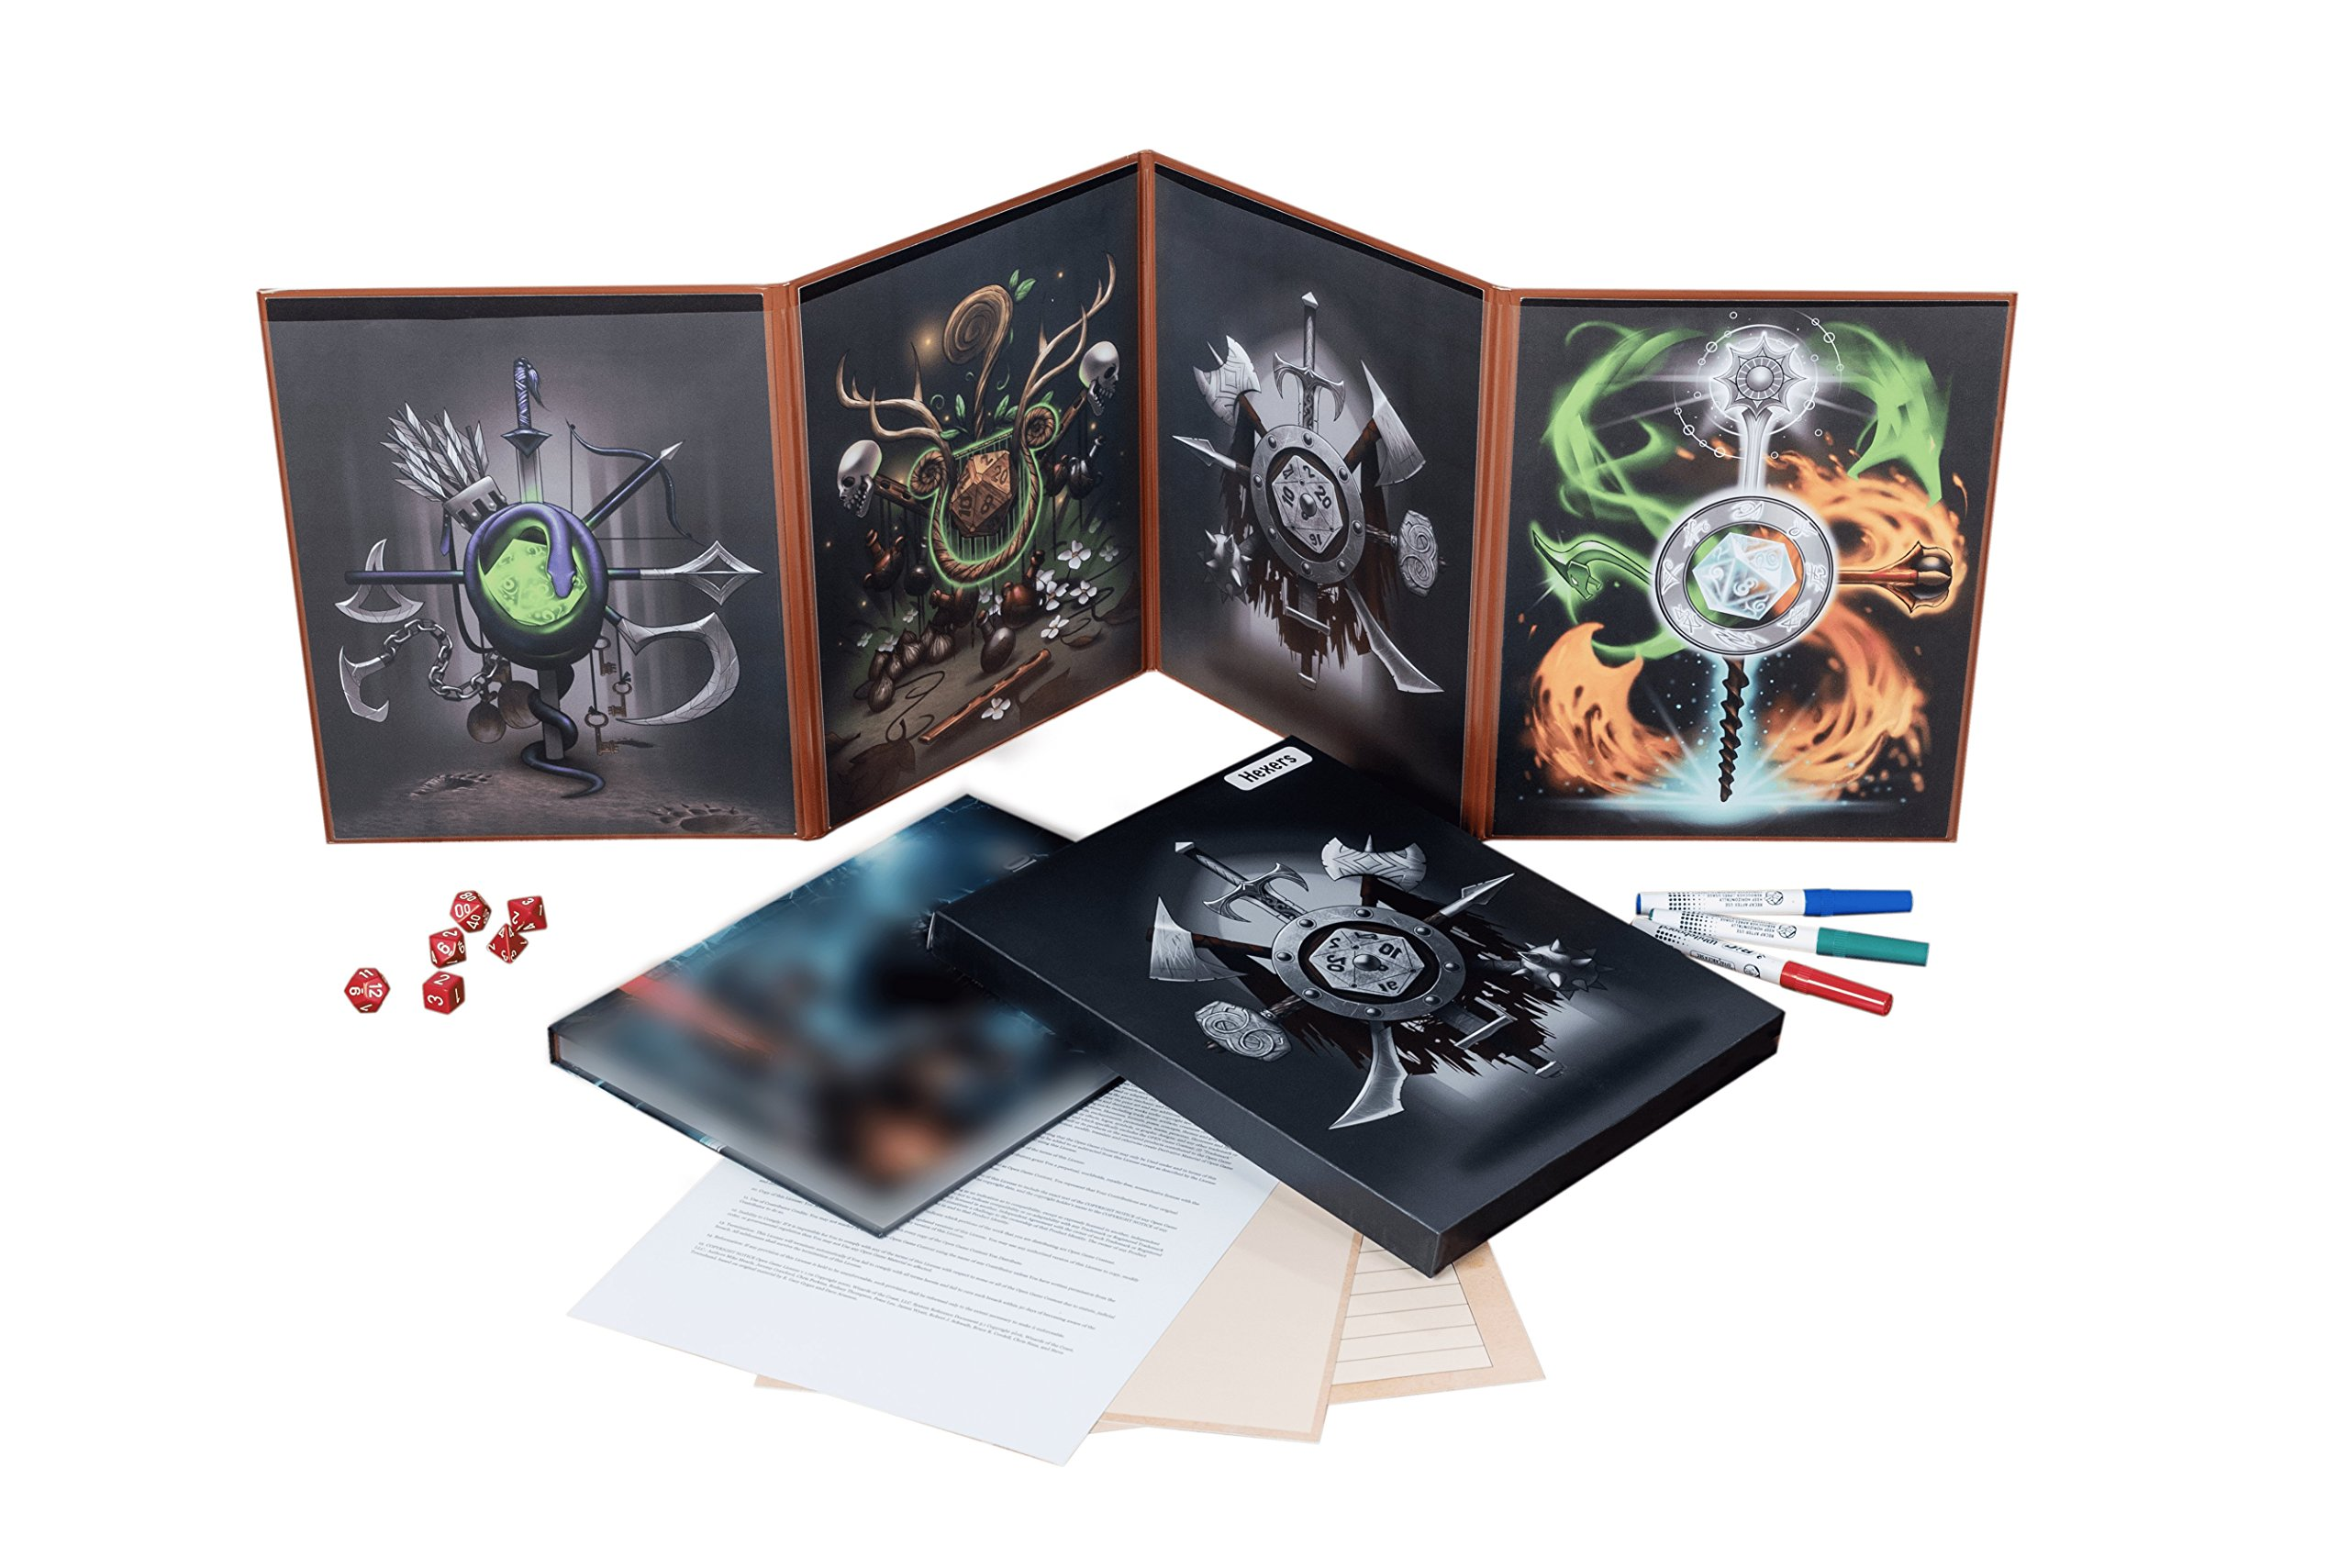 Hexers Game Master Screen - Dungeons and Dragons D&D DND DM Pathfinder RPG Role Playing Compatible - 4 Customizable Panels - Inserts Included That Slide into The Pouches - Dry Erase Tracker Sheet by Hexers (Image #8)